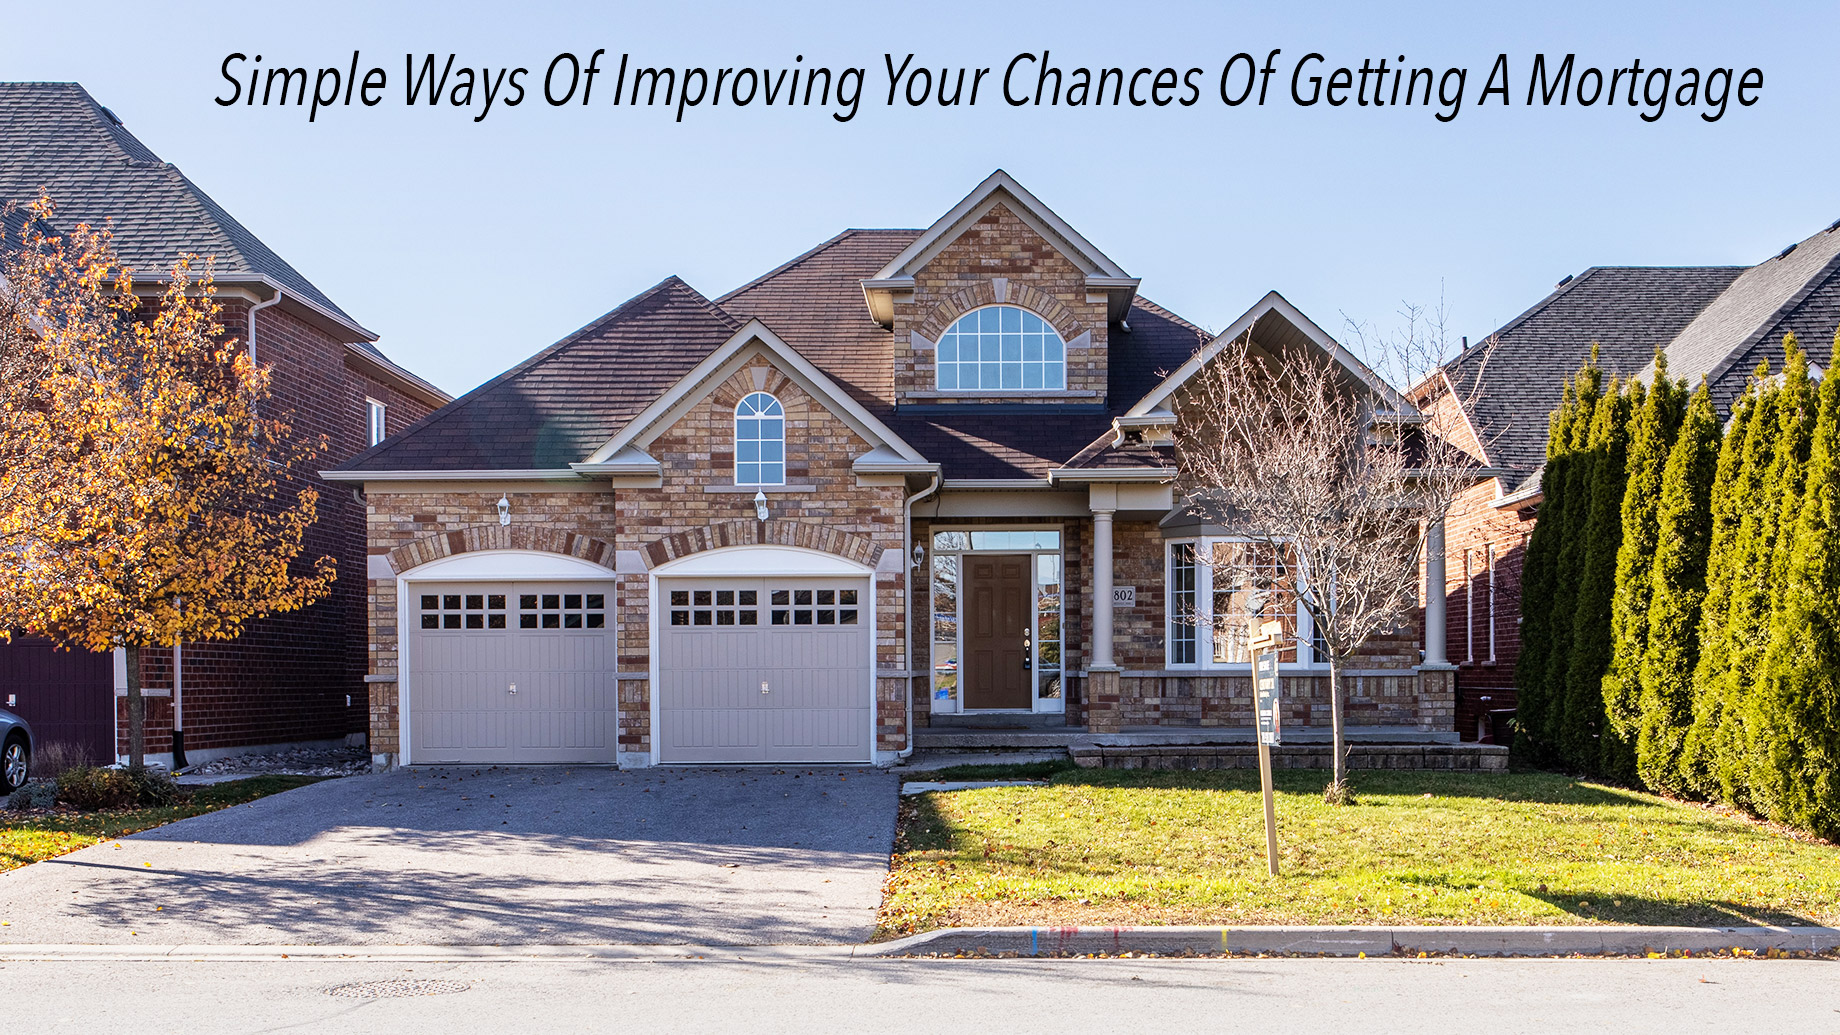 Simple Ways Of Improving Your Chances Of Getting A Mortgage